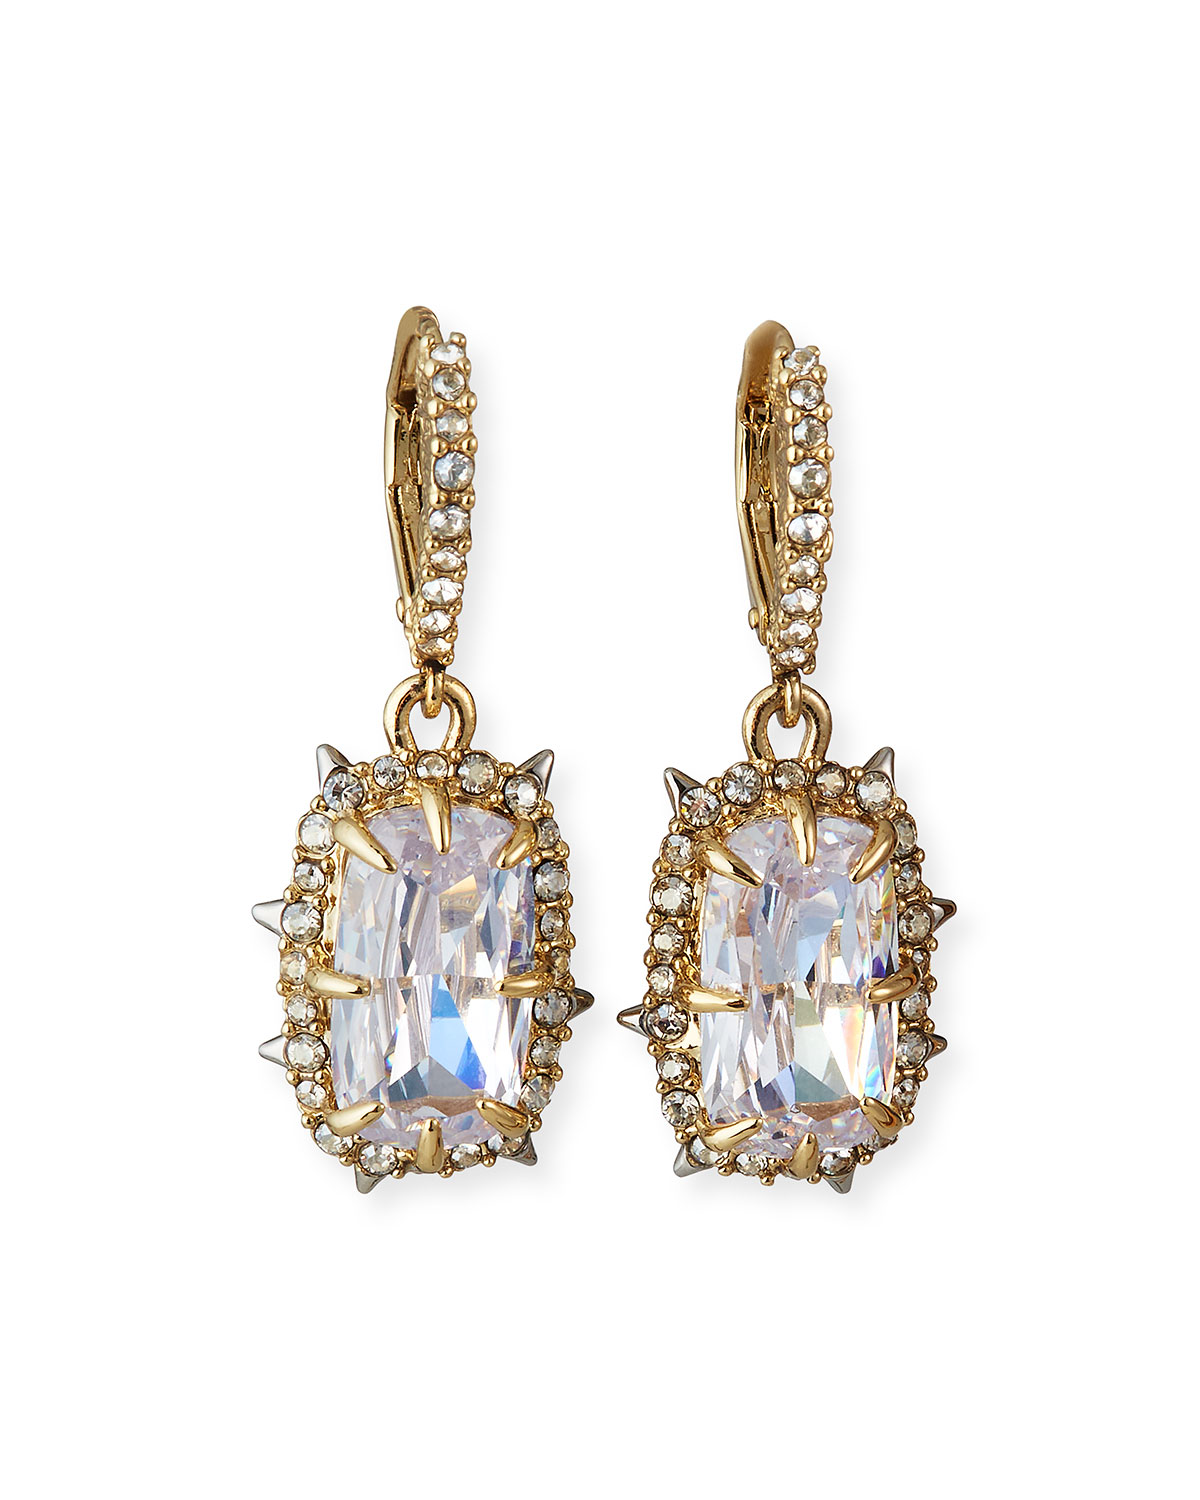 Alexis Bittar Crystal Framed Cushion Earrings